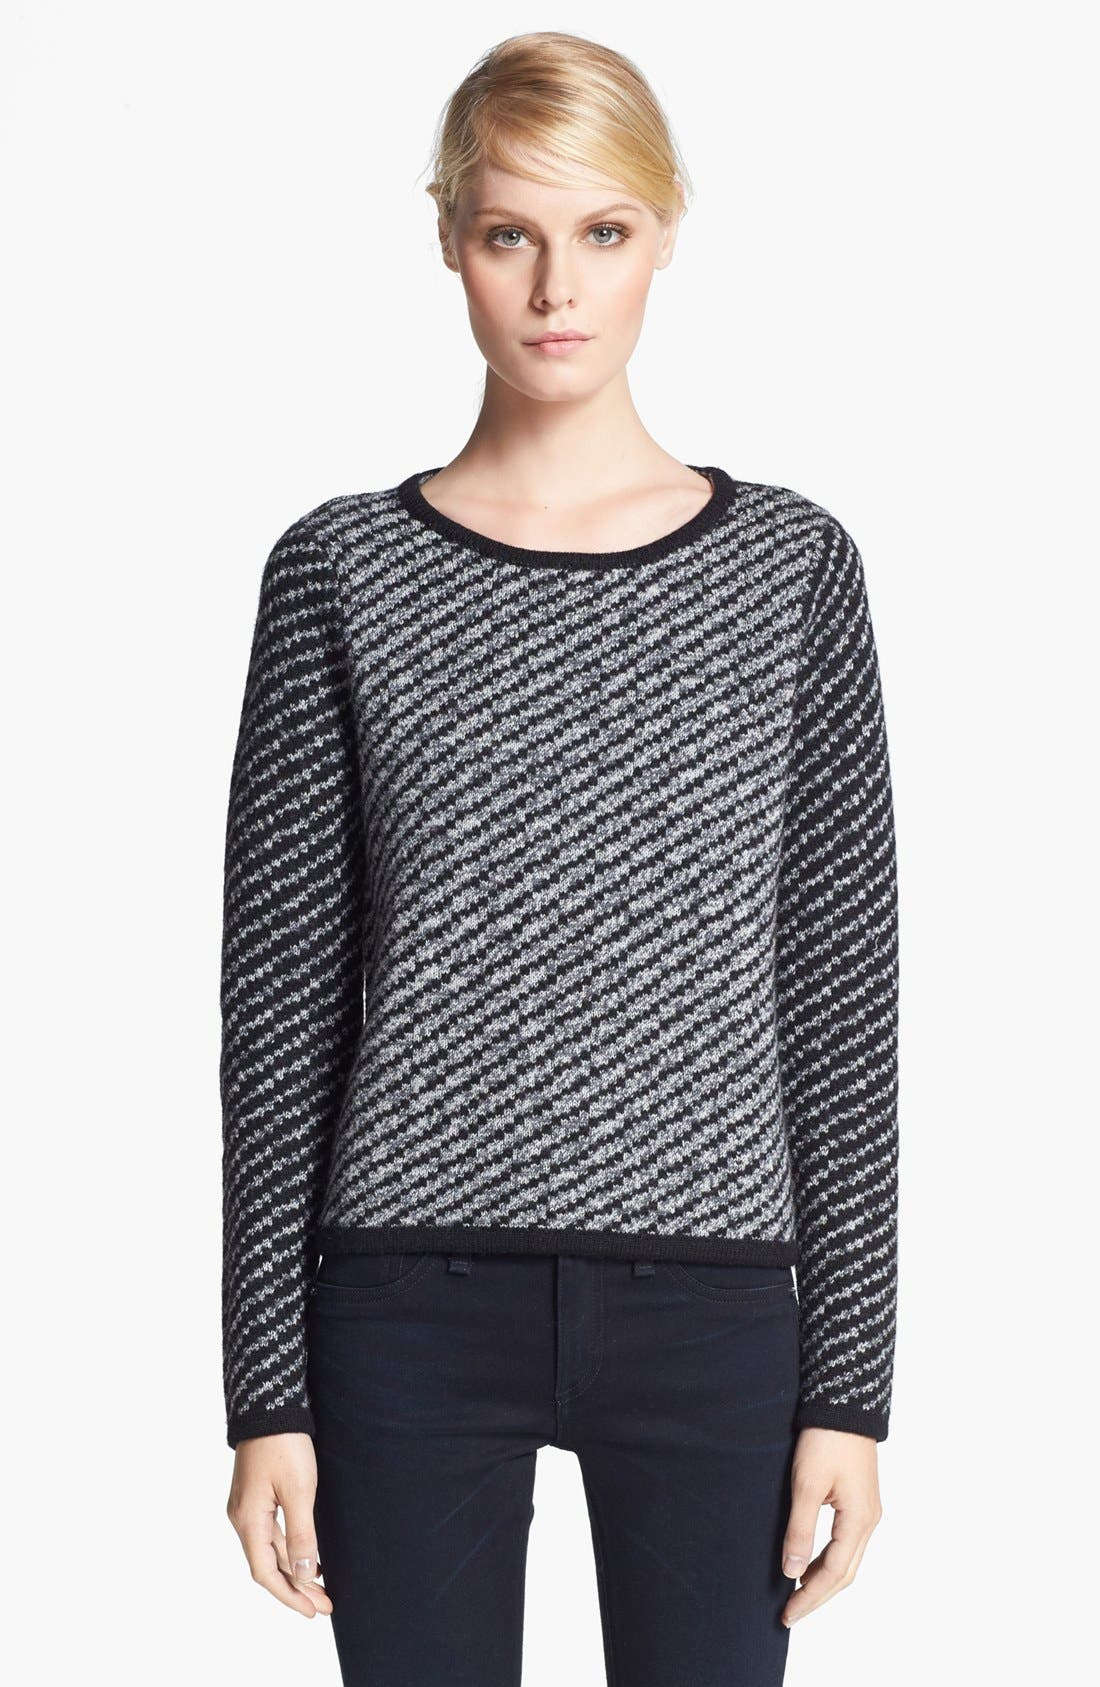 Alternate Image 1 Selected - rag & bone 'Ava' Sweater (Nordstrom Exclusive)